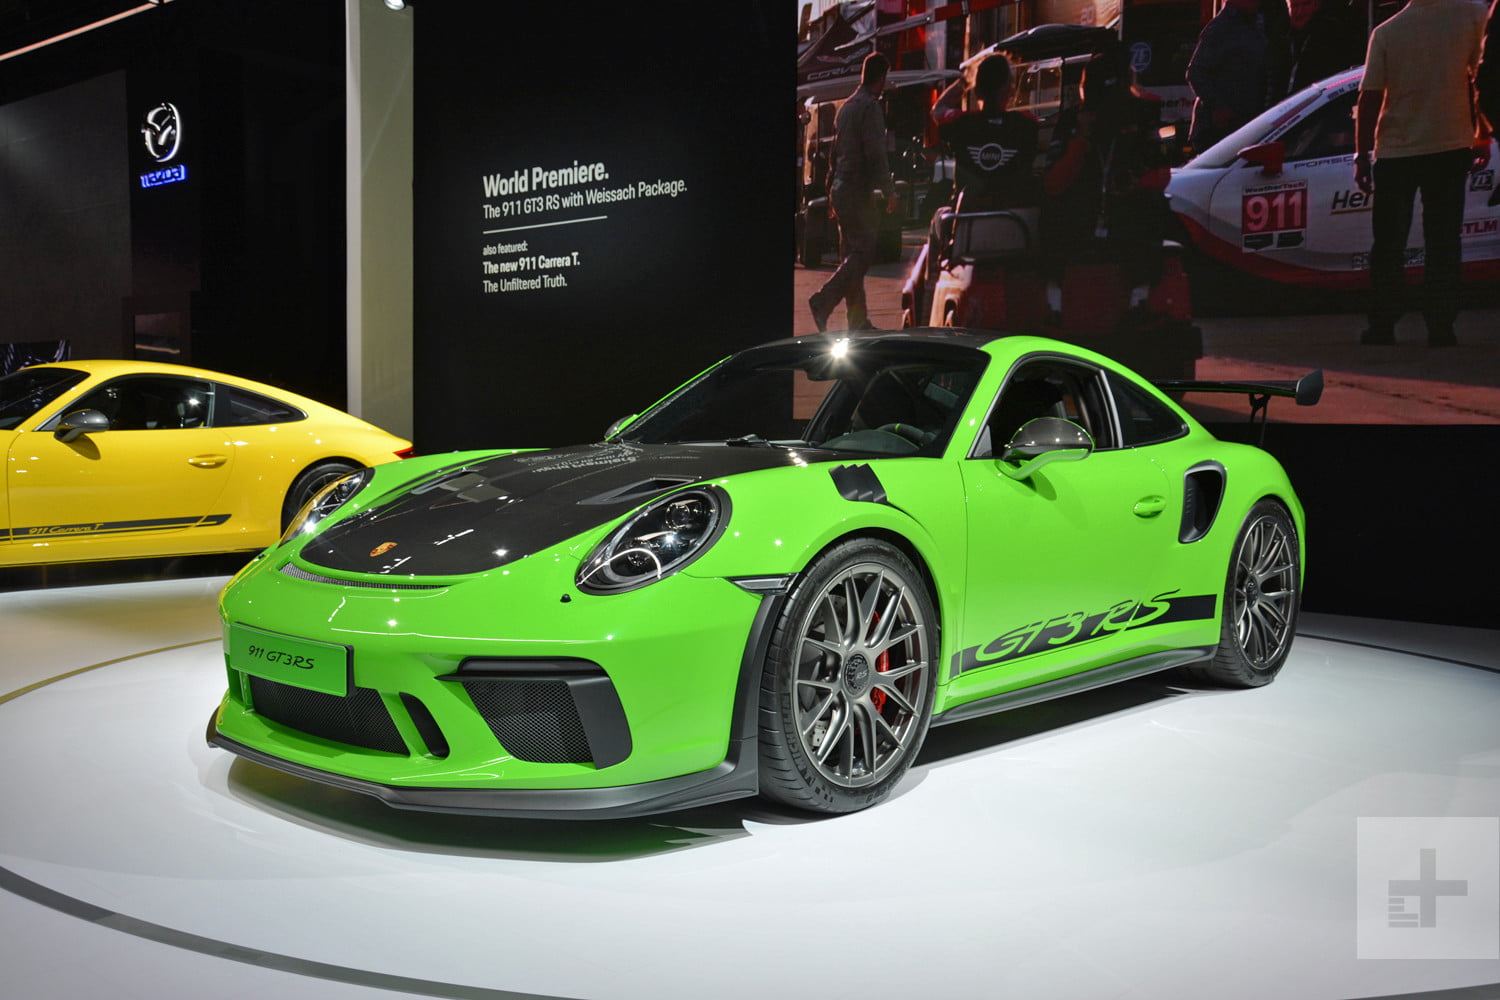 2019 Porsche 911 Gt3 Rs Gets More Powerful And Faster Digital